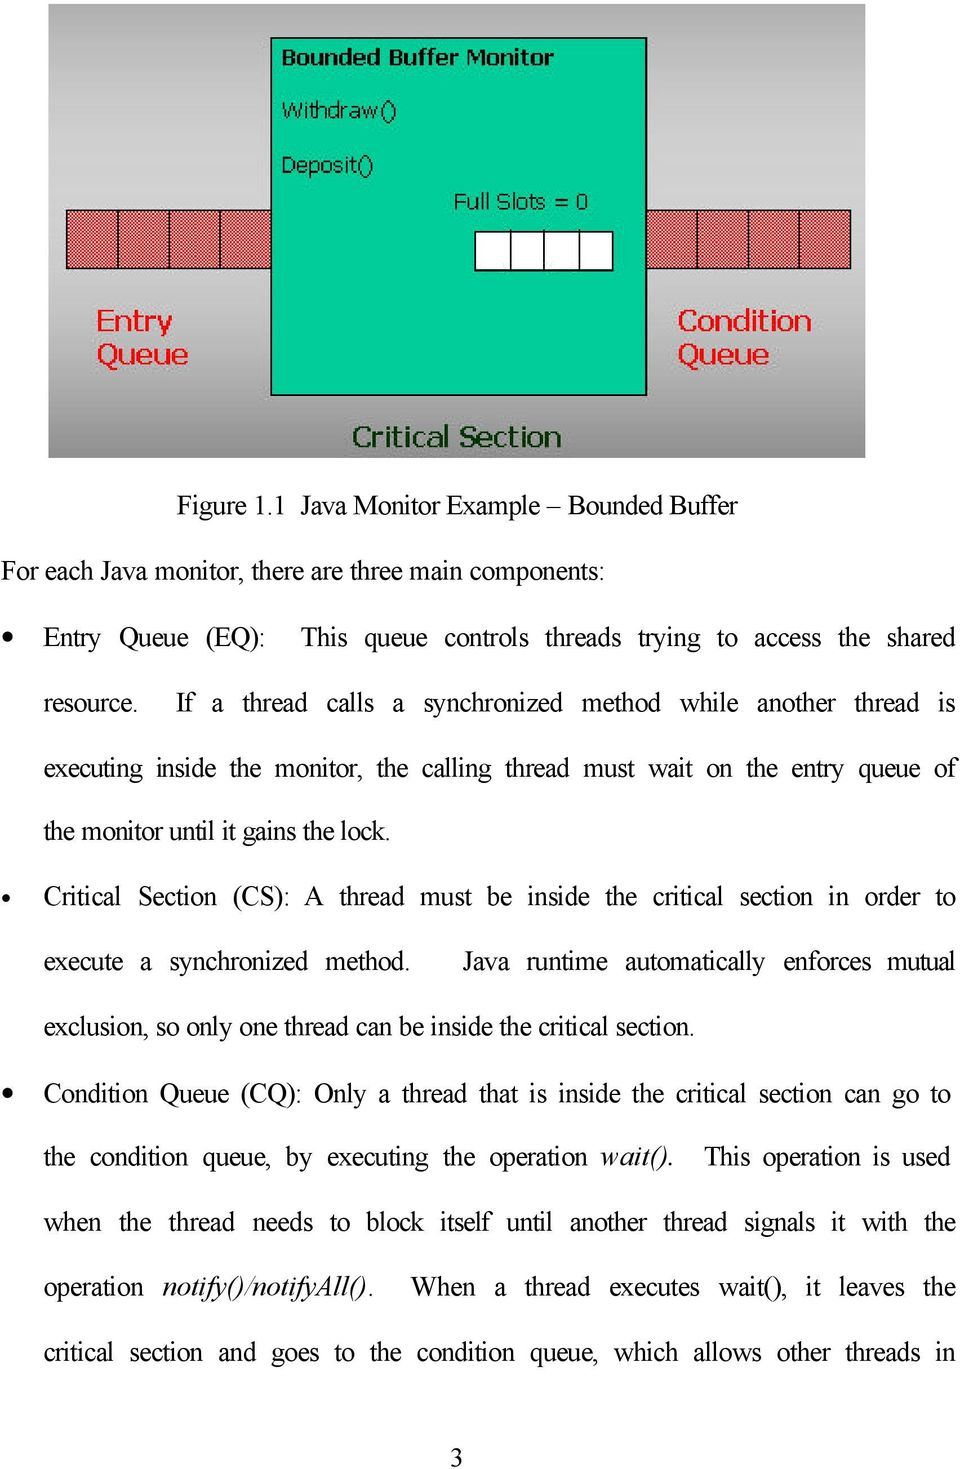 Critical Section (CS): A thread must be inside the critical section in order to execute a synchronized method.